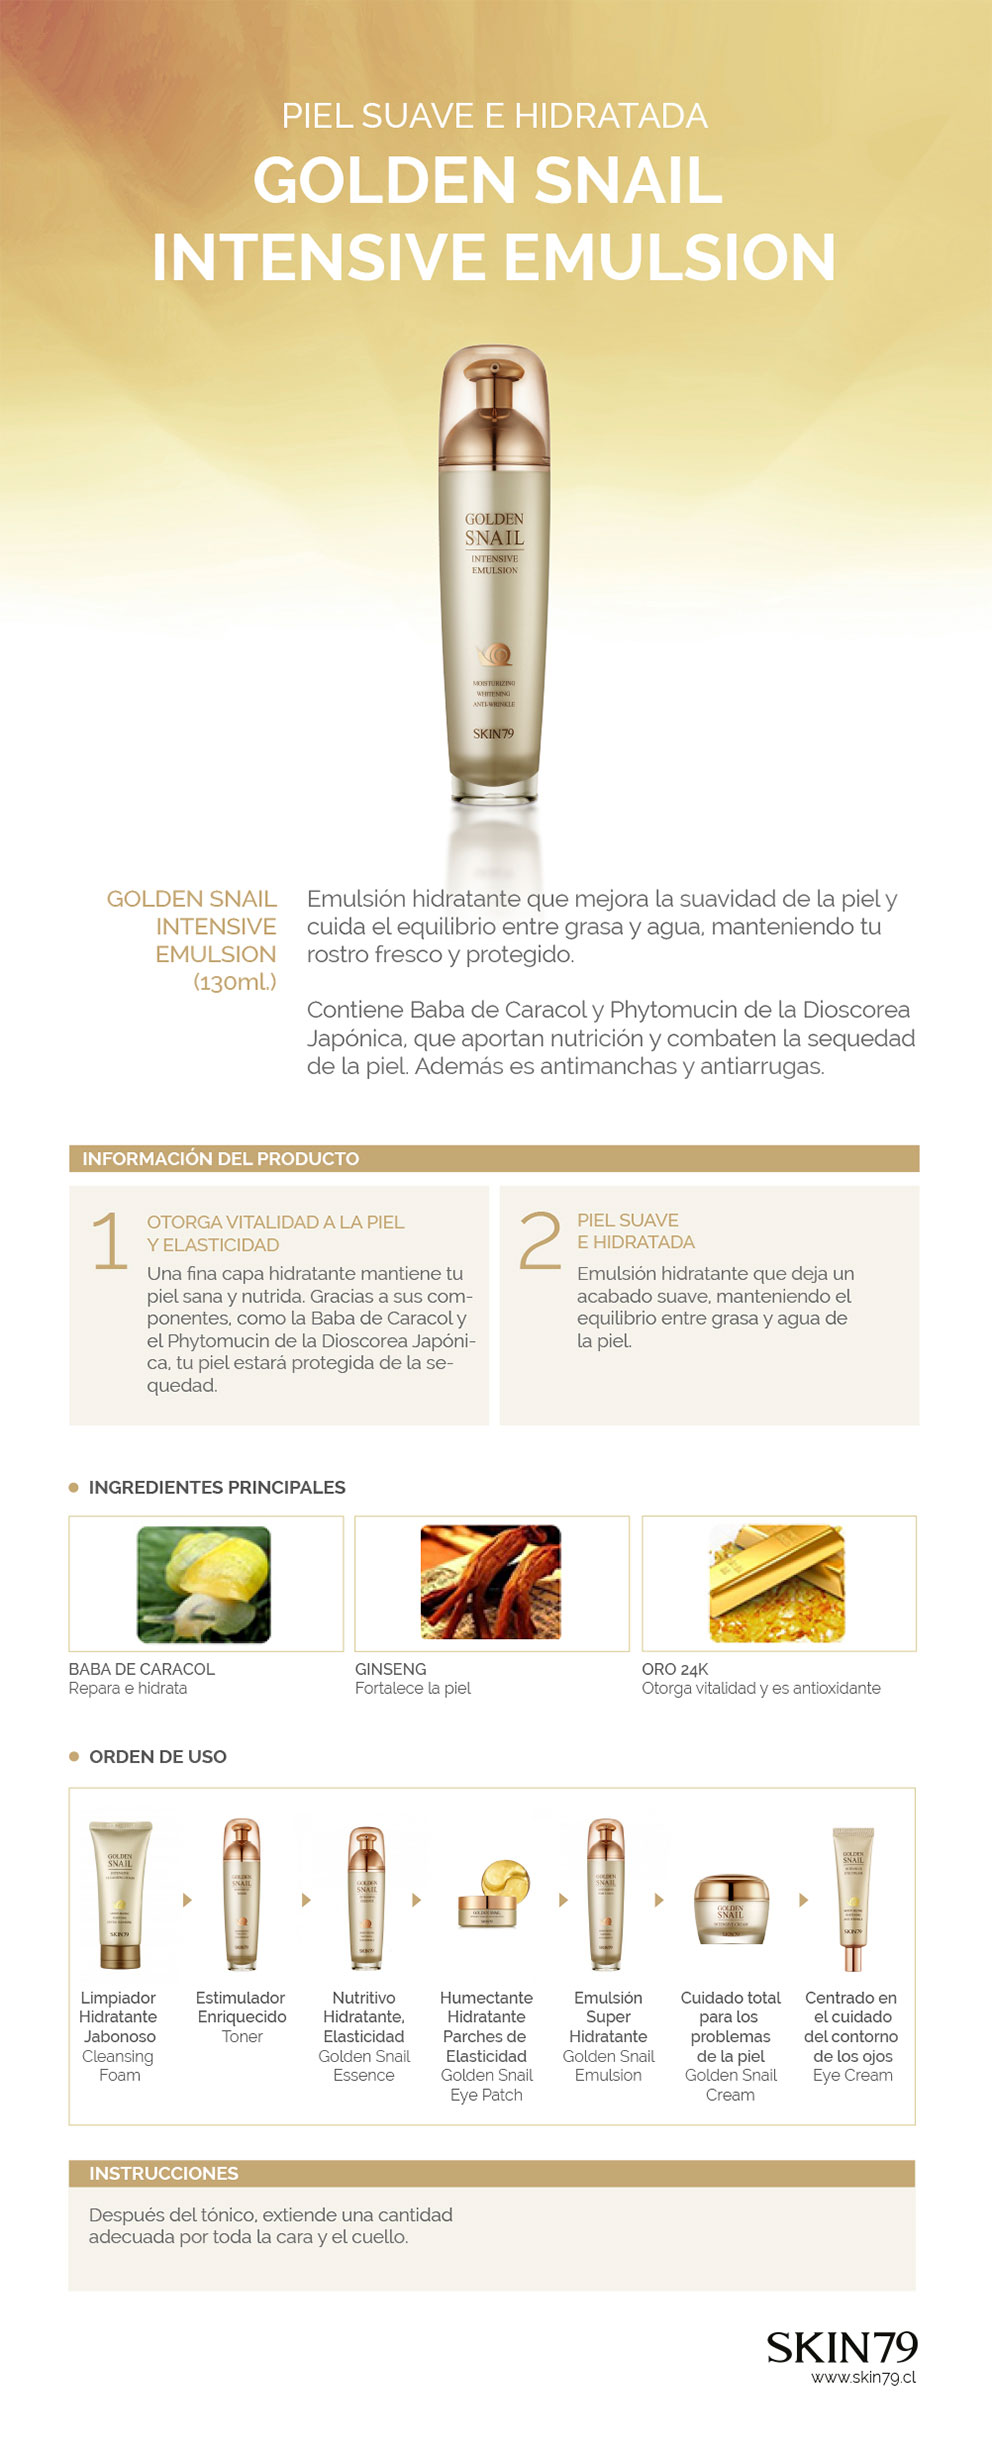 GOLDEN SNAIL INTENSIVE EMULSION - Skin79